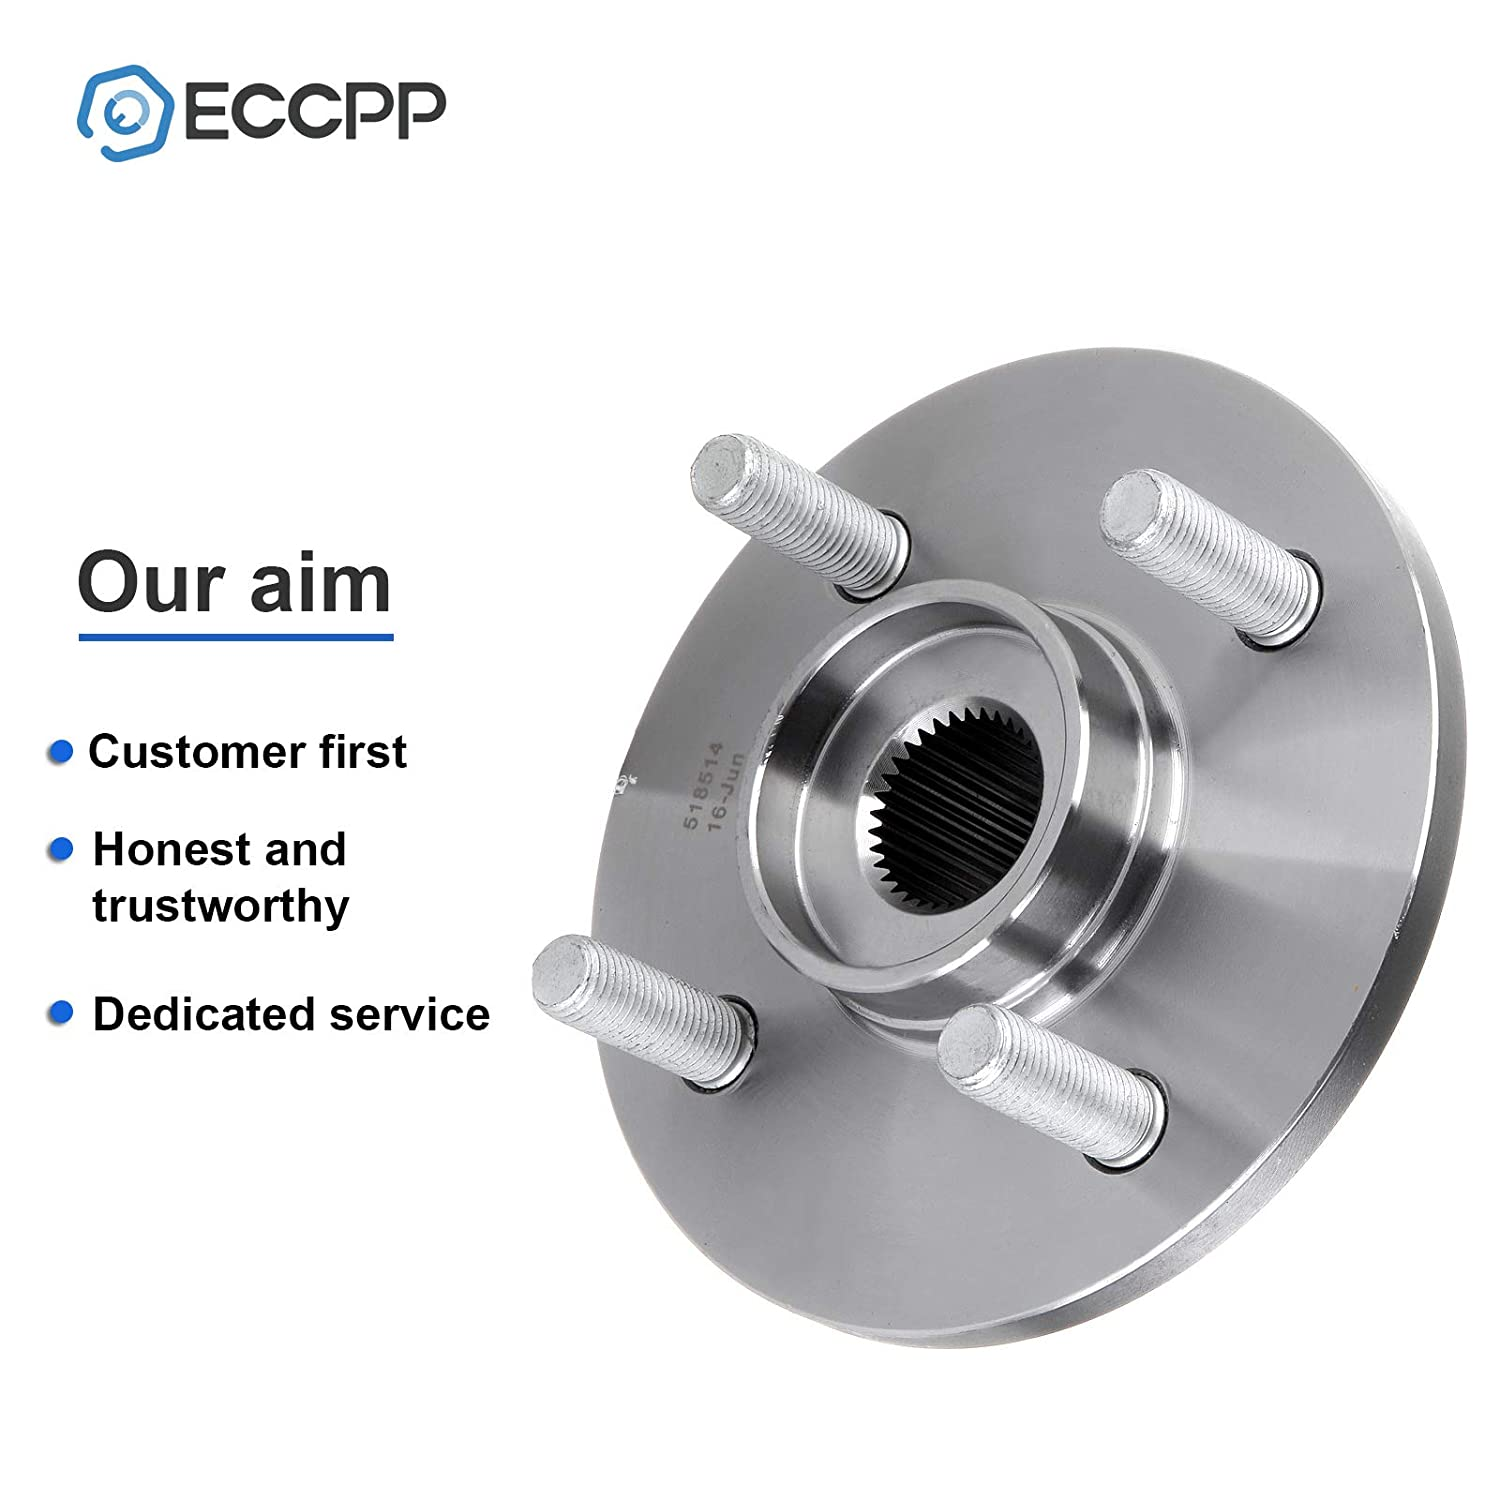 ECCPP Wheel Hub Bearing Assembly New Premium Bearing and Hub Assembly Front 4 Lugs for Saturn 1994-2002 Compatible with 518514